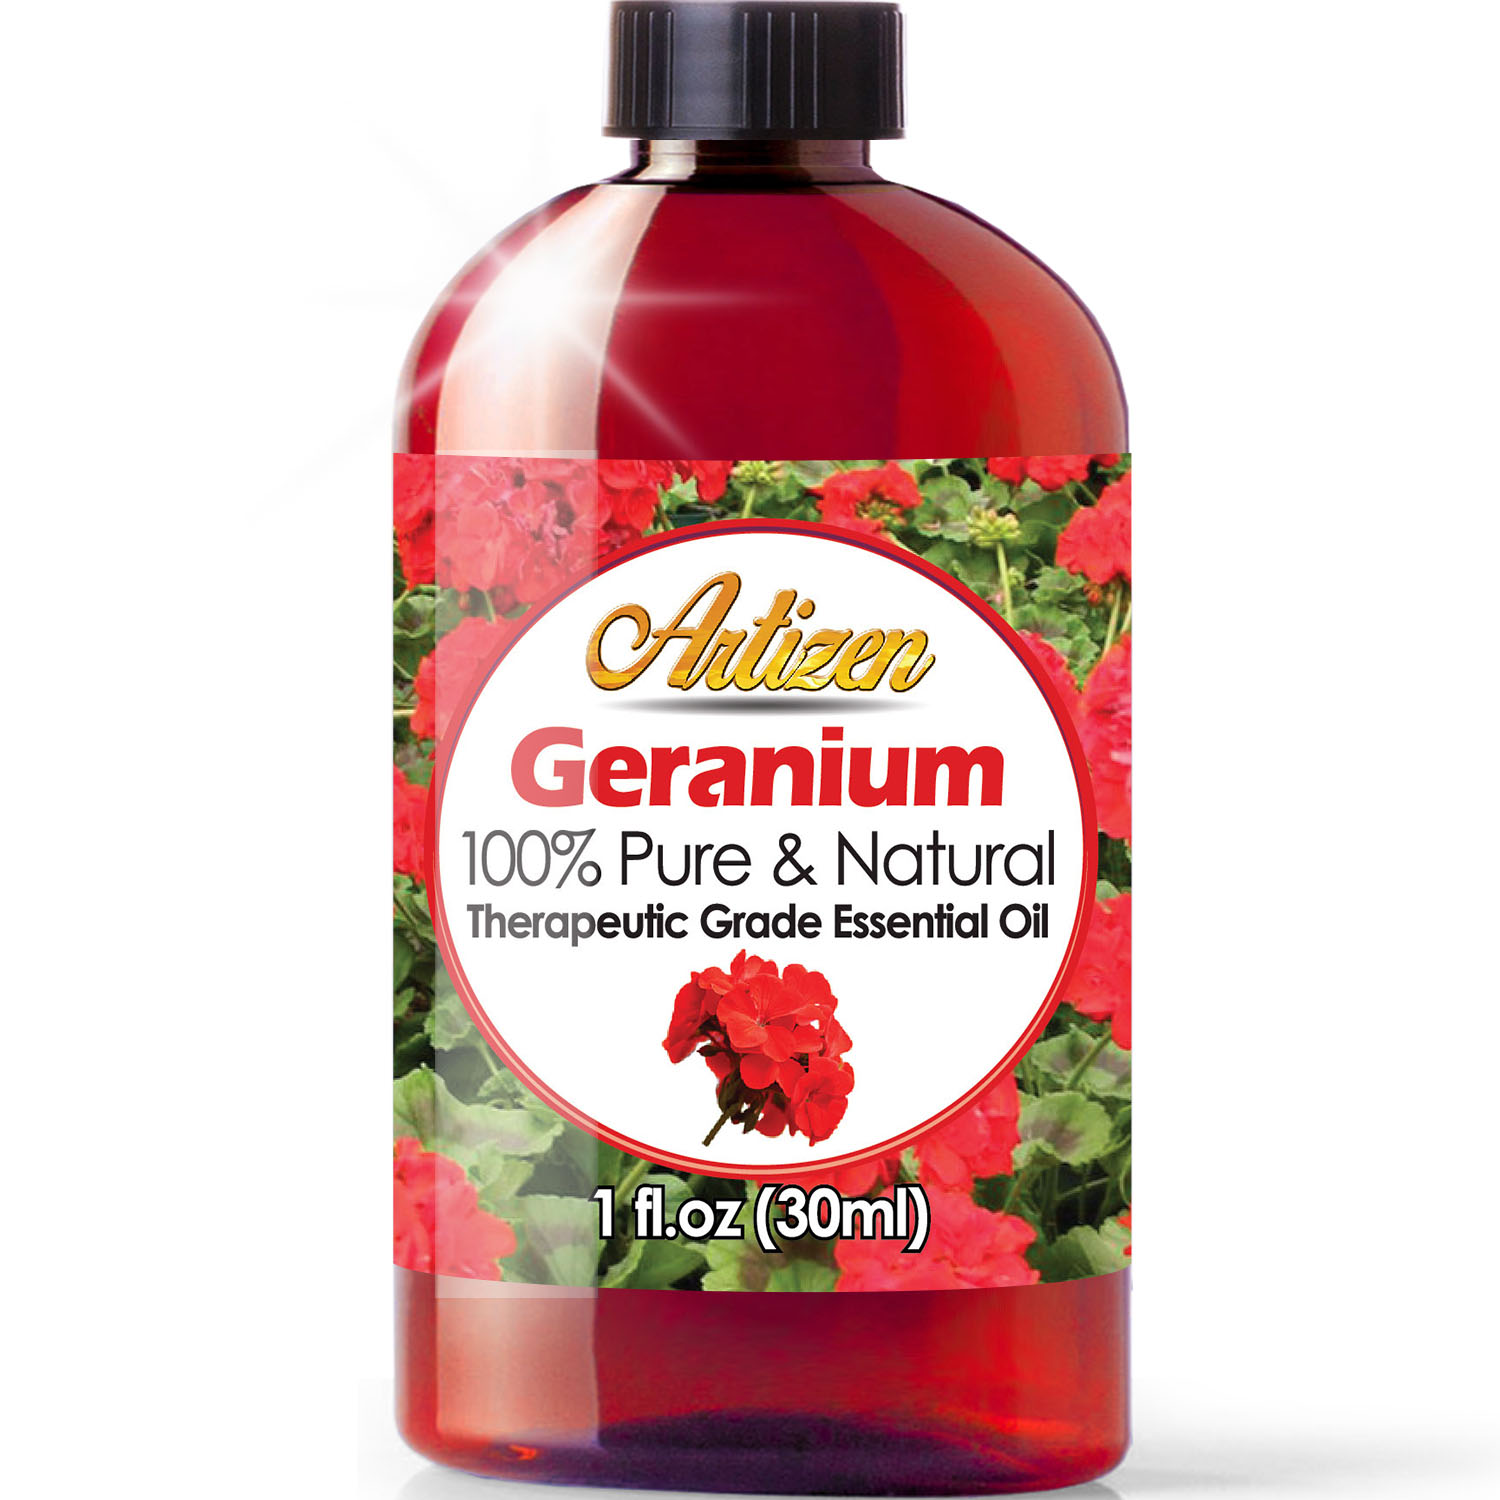 Artizen Geranium Essential Oil 100 Pure Natural Undiluted Therapeutic Grade Huge 1oz Bottle Perfect For Aromatherapy Relaxation Skin Therapy More Walmart Com Walmart Com